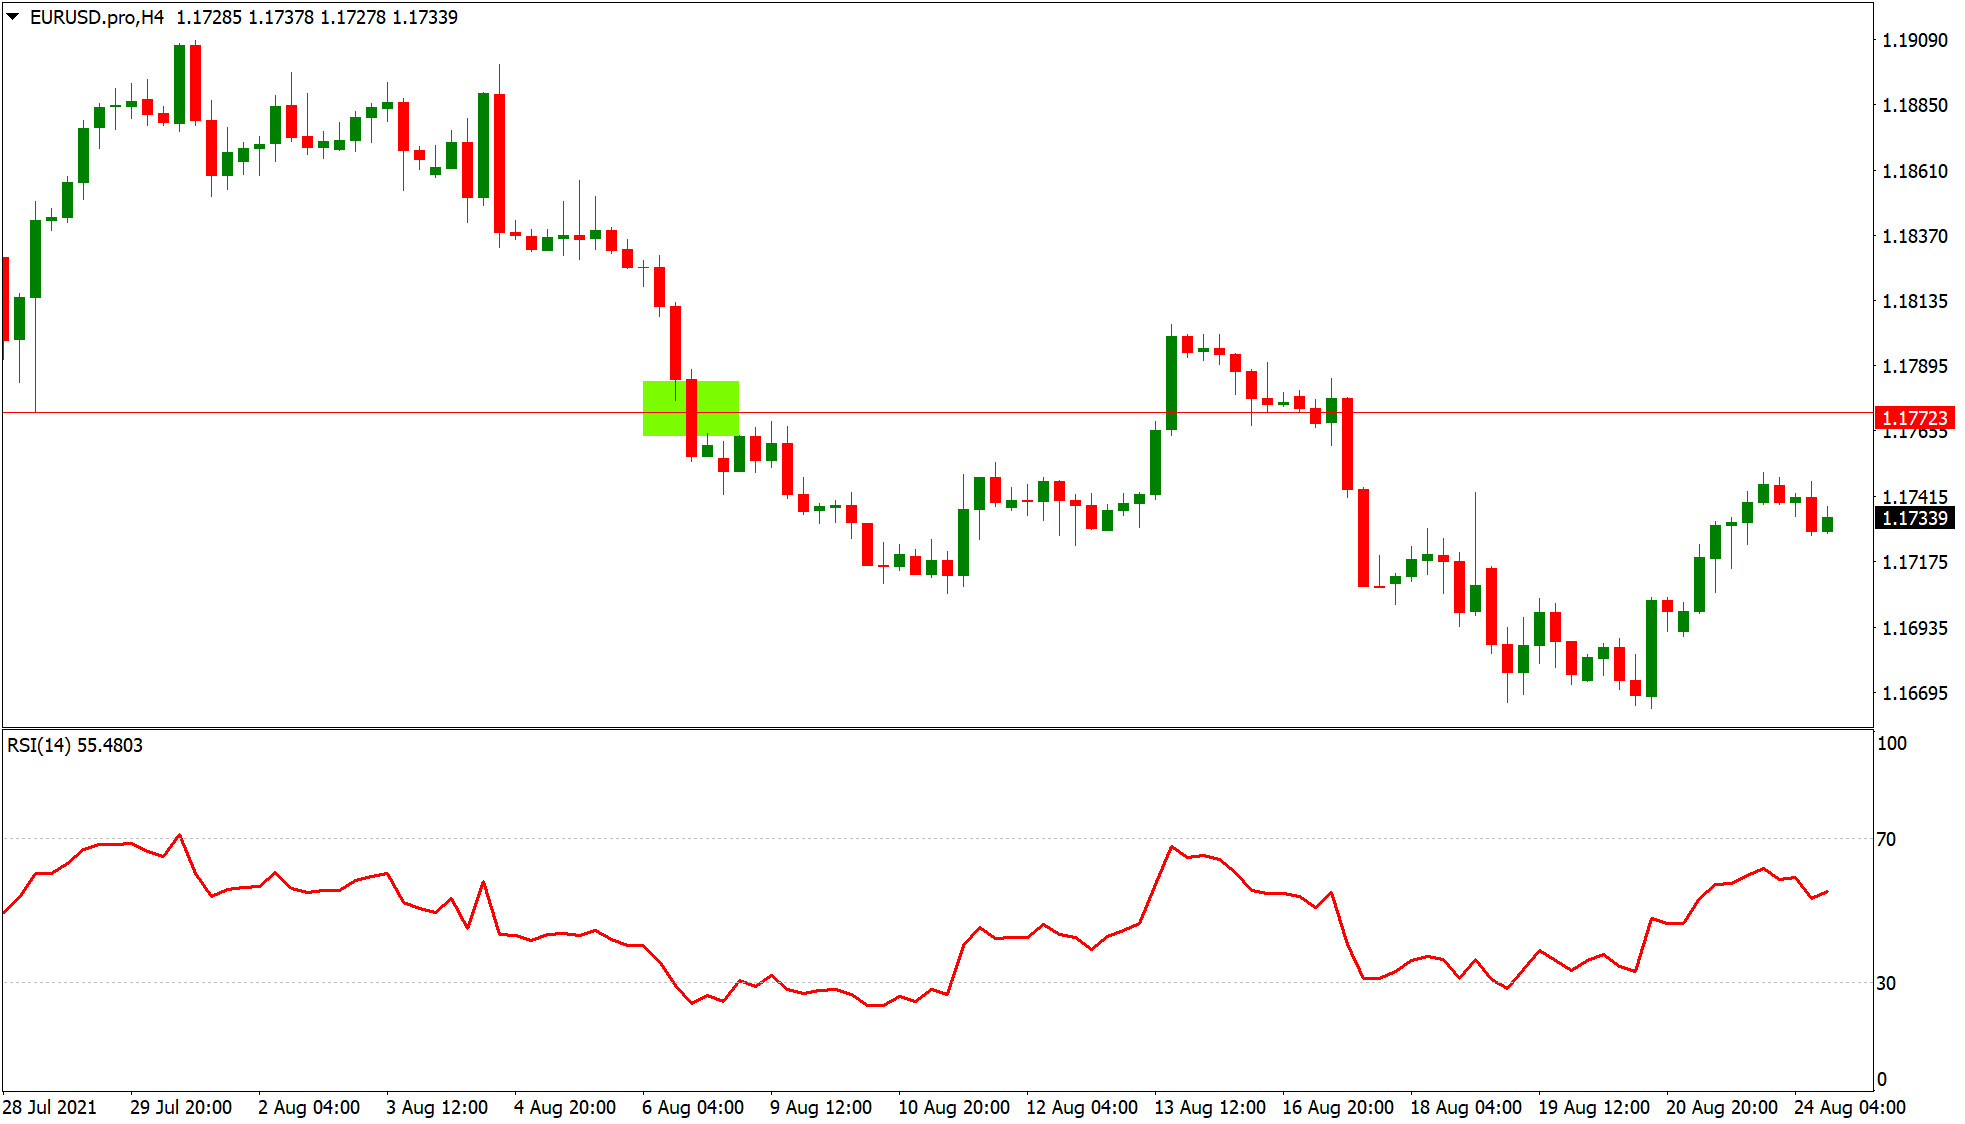 EURUSD chart with price action trading